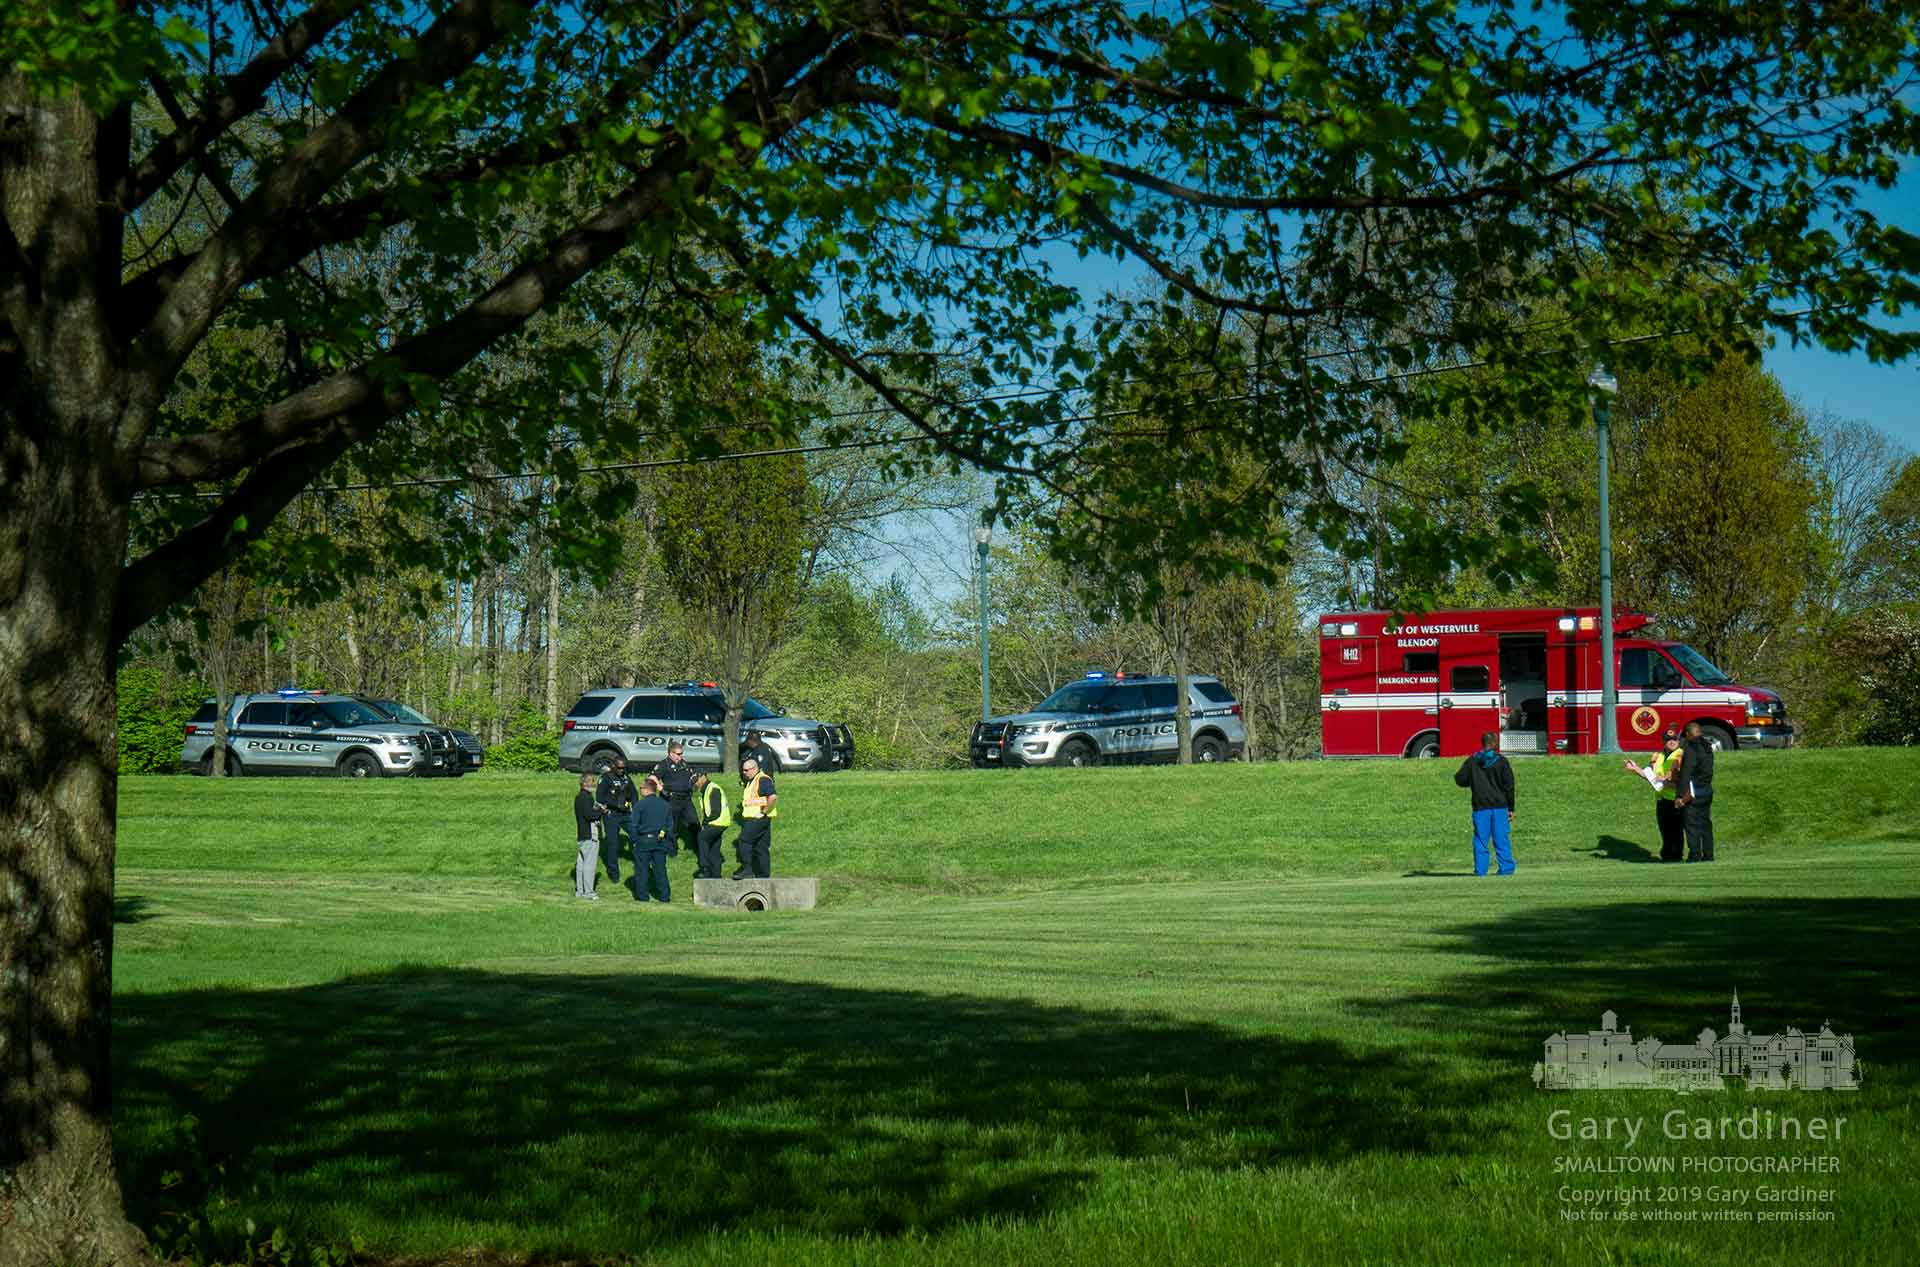 Westerville police and firefighters assist a medically distressed elderly man who walked away from his care facility returning only after first responders help him overcome his immediate problems. My Final Photo for April 28, 2019.